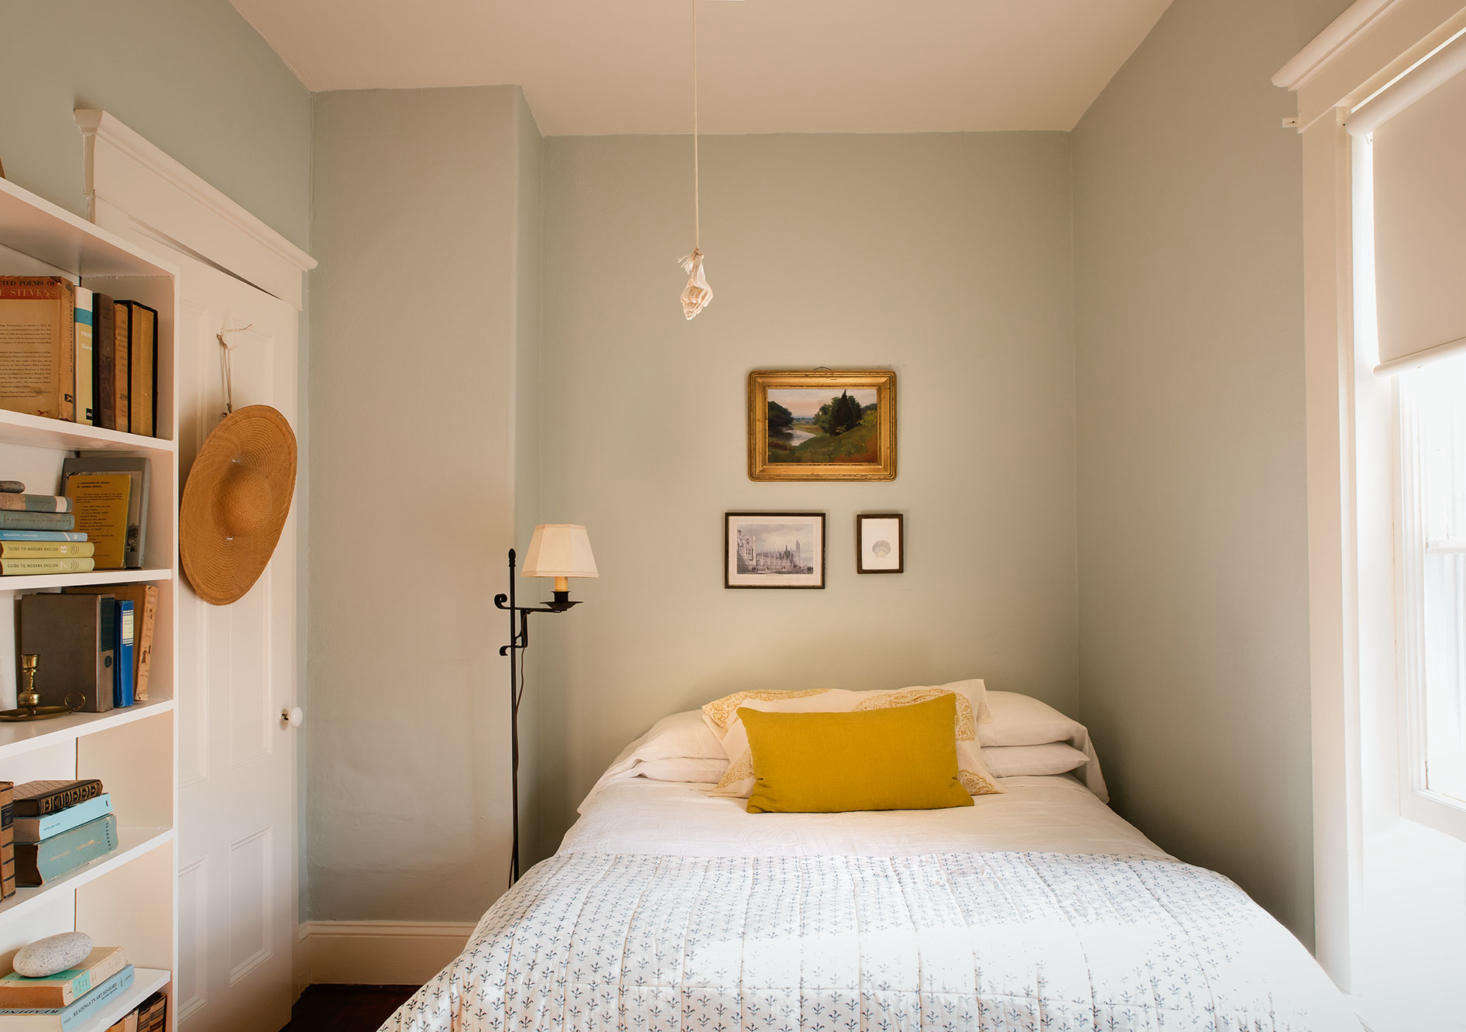 Before & After: A Low-Cost Summer Guest Room Makeover, Cape Cod ...